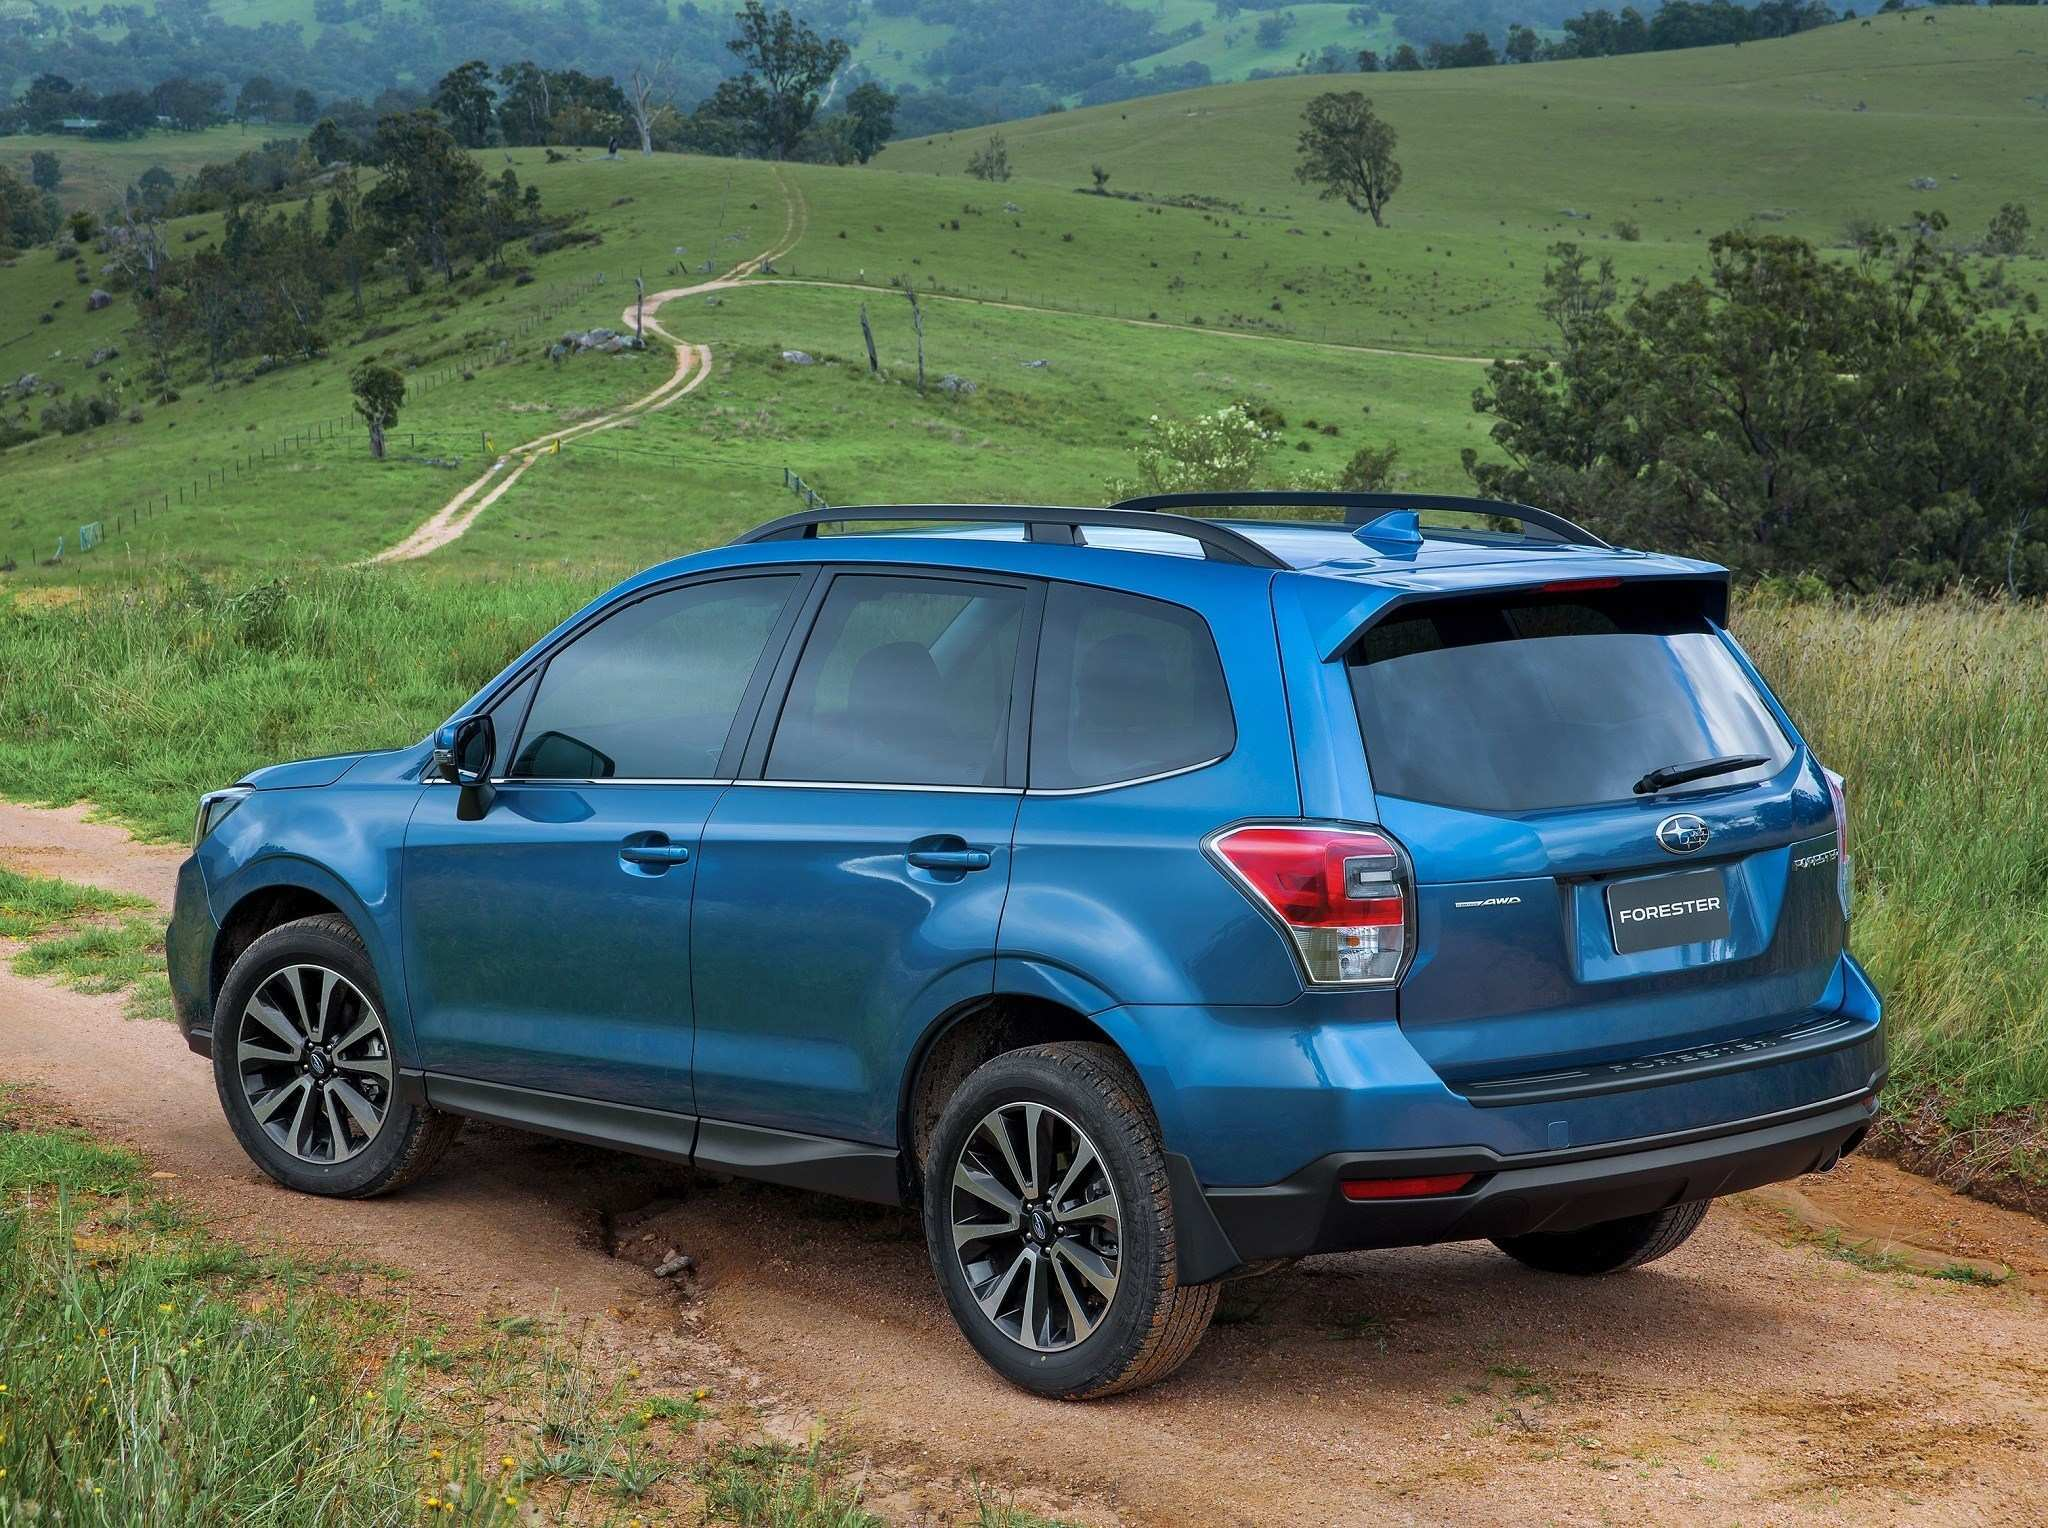 79 New 2020 Subaru Forester First Drive with 2020 Subaru Forester